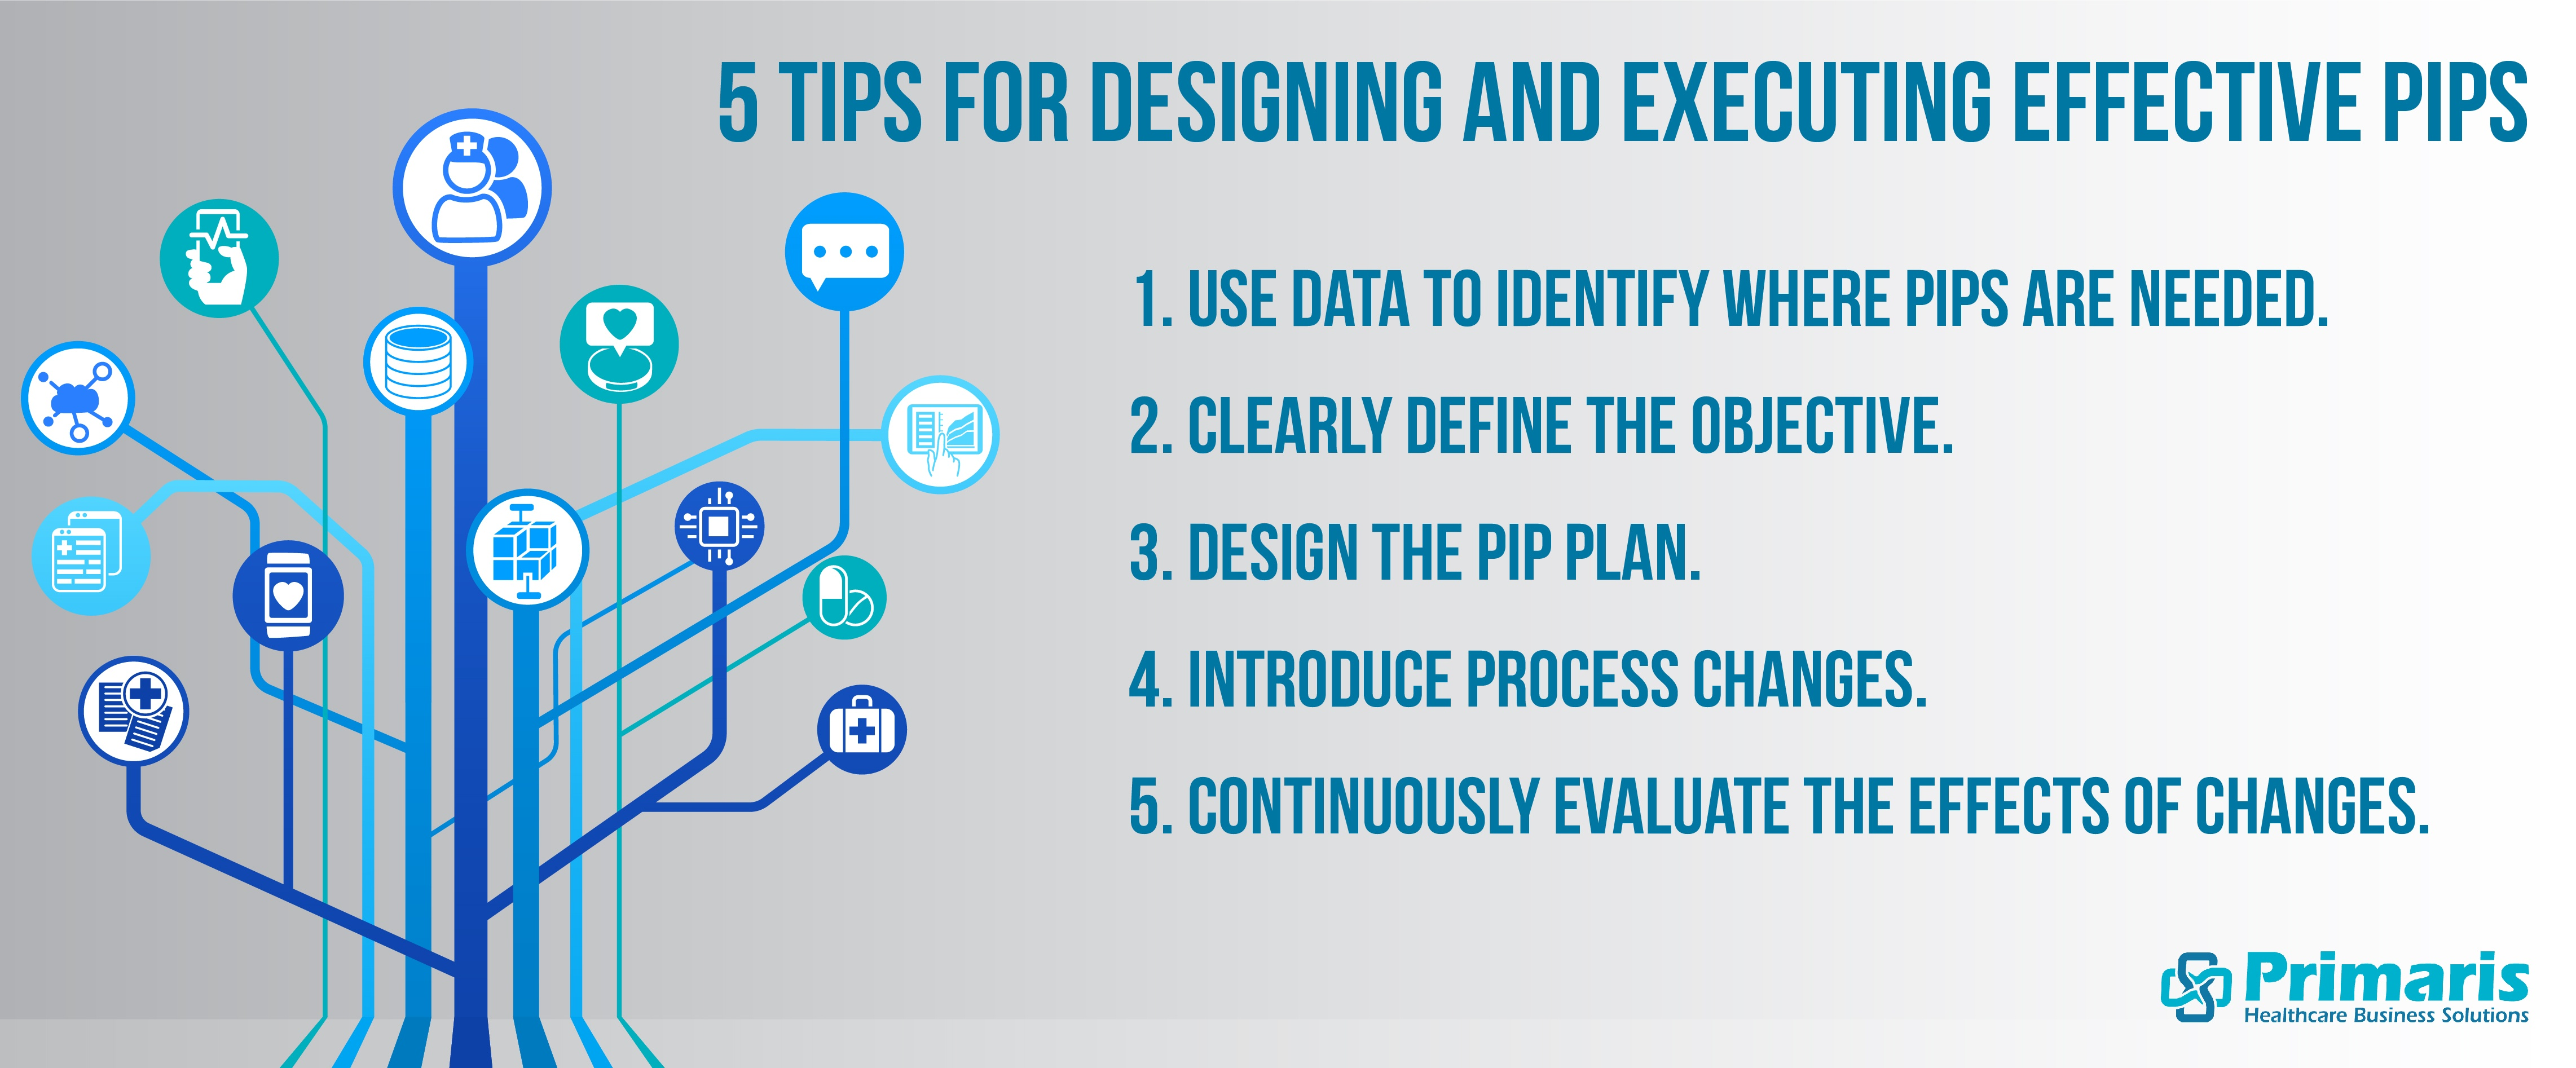 5 tips for effective PIPs: use data to identify where PIPS are needed; clearly define the objective; design the PIP plan; introduce process changes; continuously evaluate the effects of changes